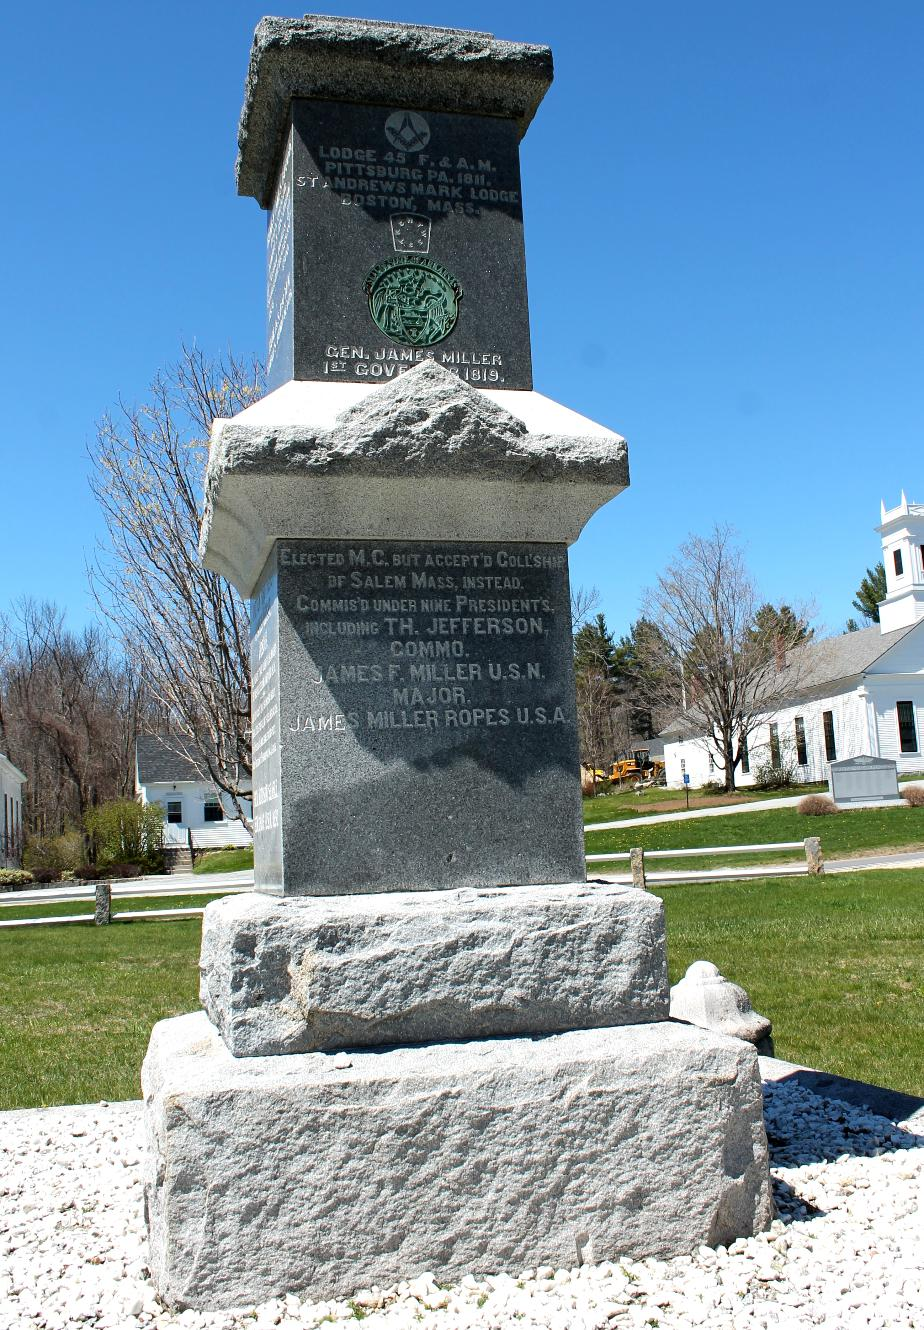 General James Miller Monument - Temple NH